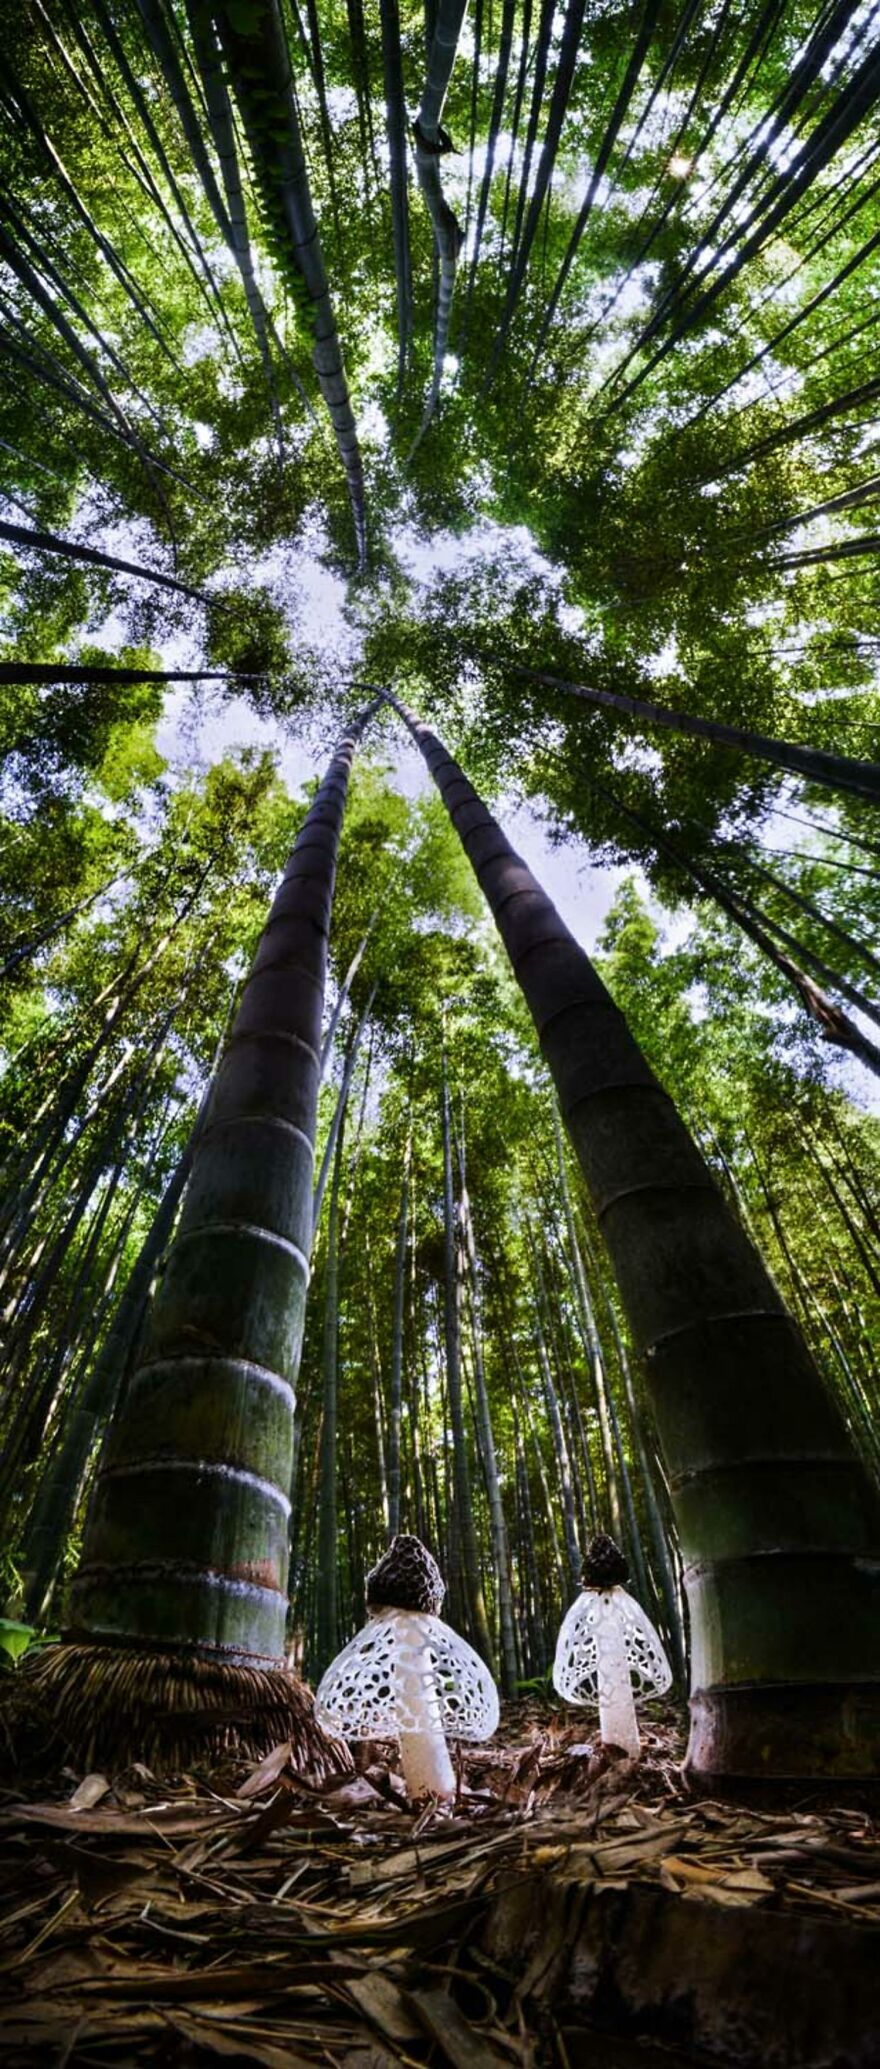 """Category Plants And Fungi: """"Spirits Of The Bamboo Forest"""" By Agorastos Papatsanis (Gr)"""